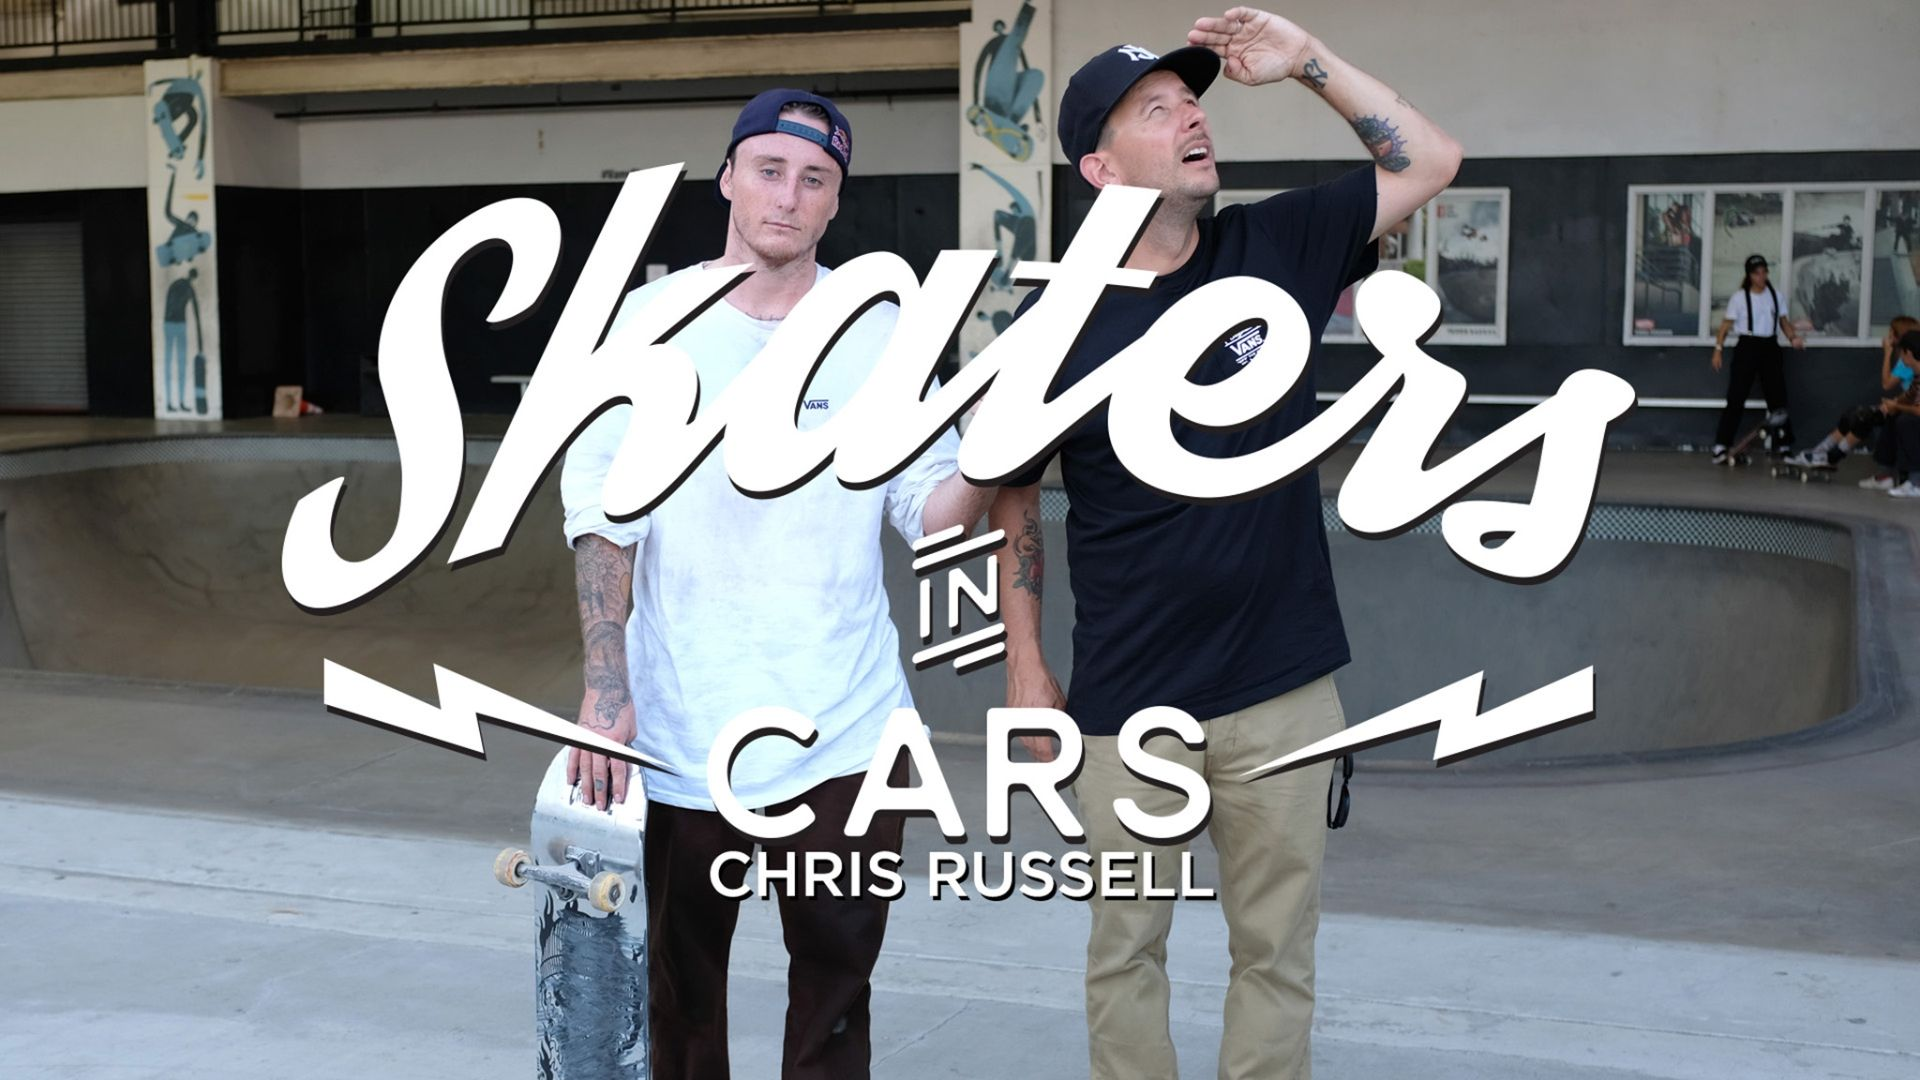 Skaters In Cars Looking At Spots: Chris Russell